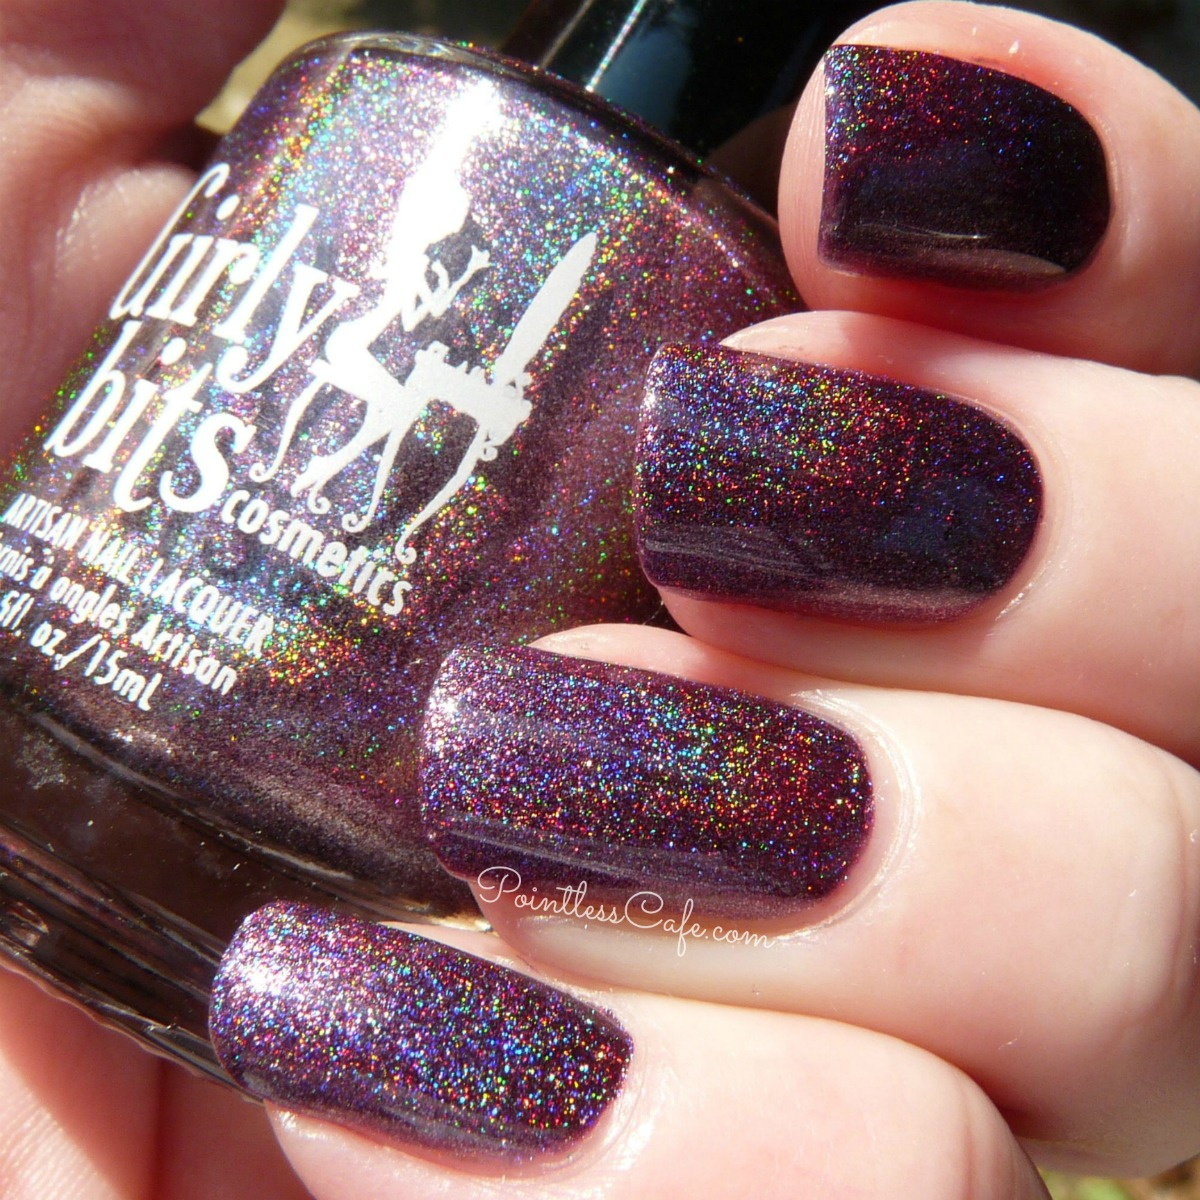 girly bits fall 2015 - Violet Cafe 2015